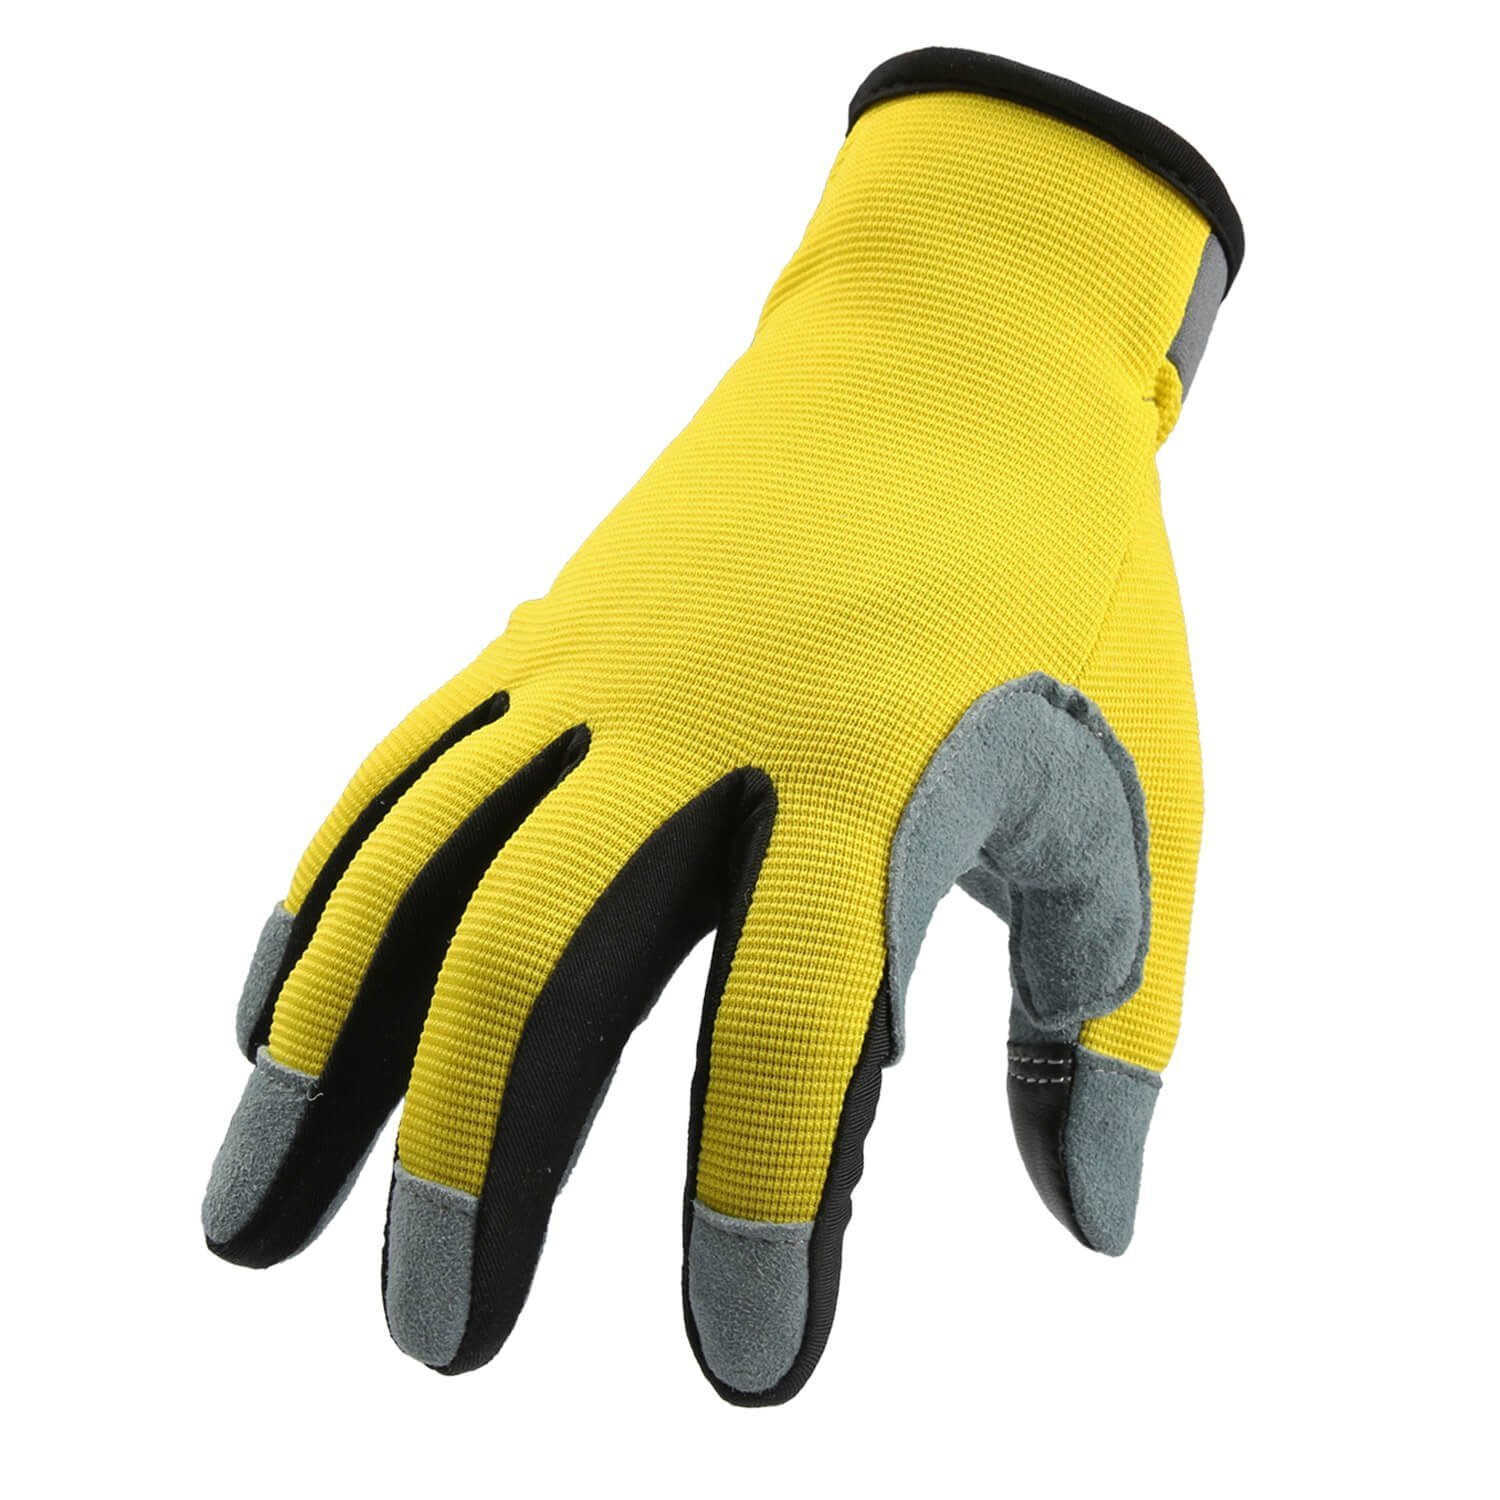 Mechanics Gloves with Genuine Deerskin Leather Palm and Sensitive Touch Screen Fingertips - Breathable and Snug-fit for Work, Gardening, DIY, Mechanics - Women and Men (Yellow,X-Large)